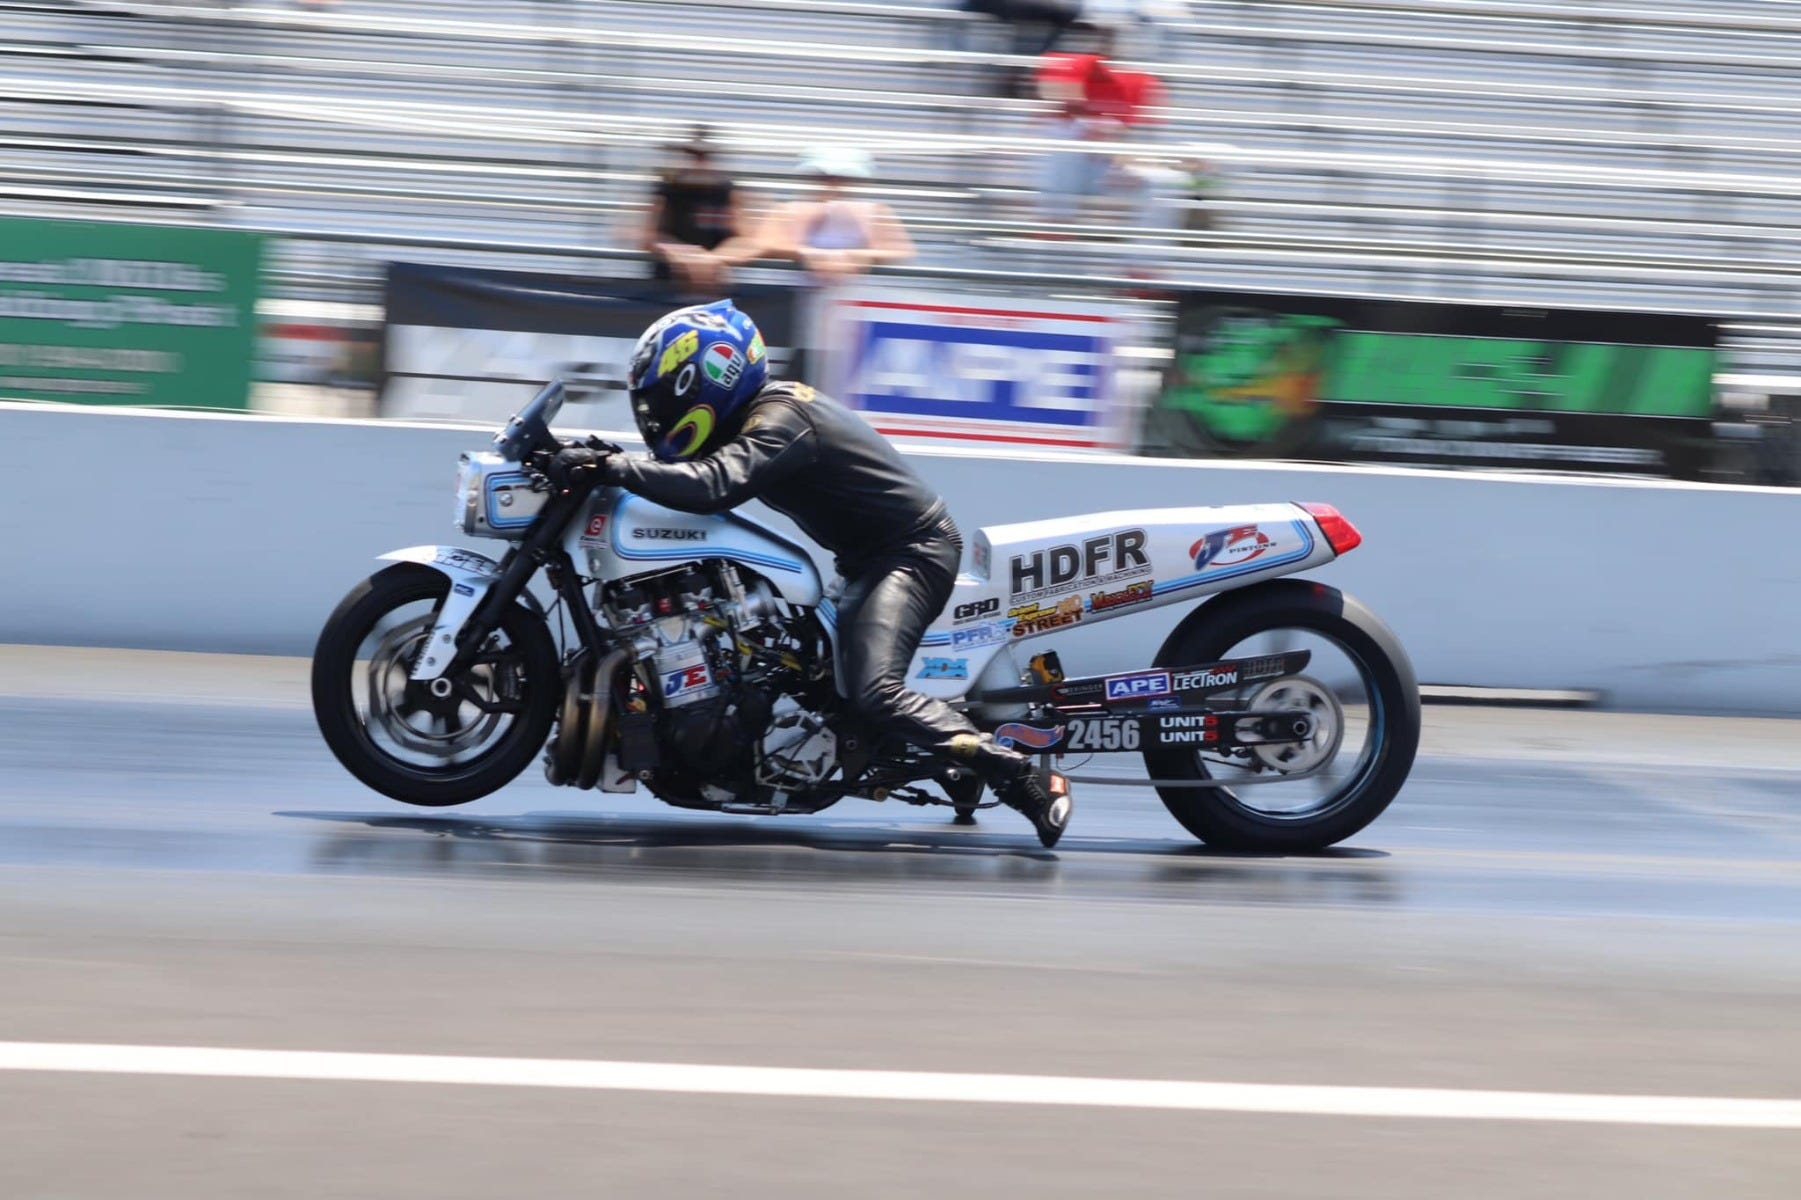 Mummer_GS_Drag_Bike_Run